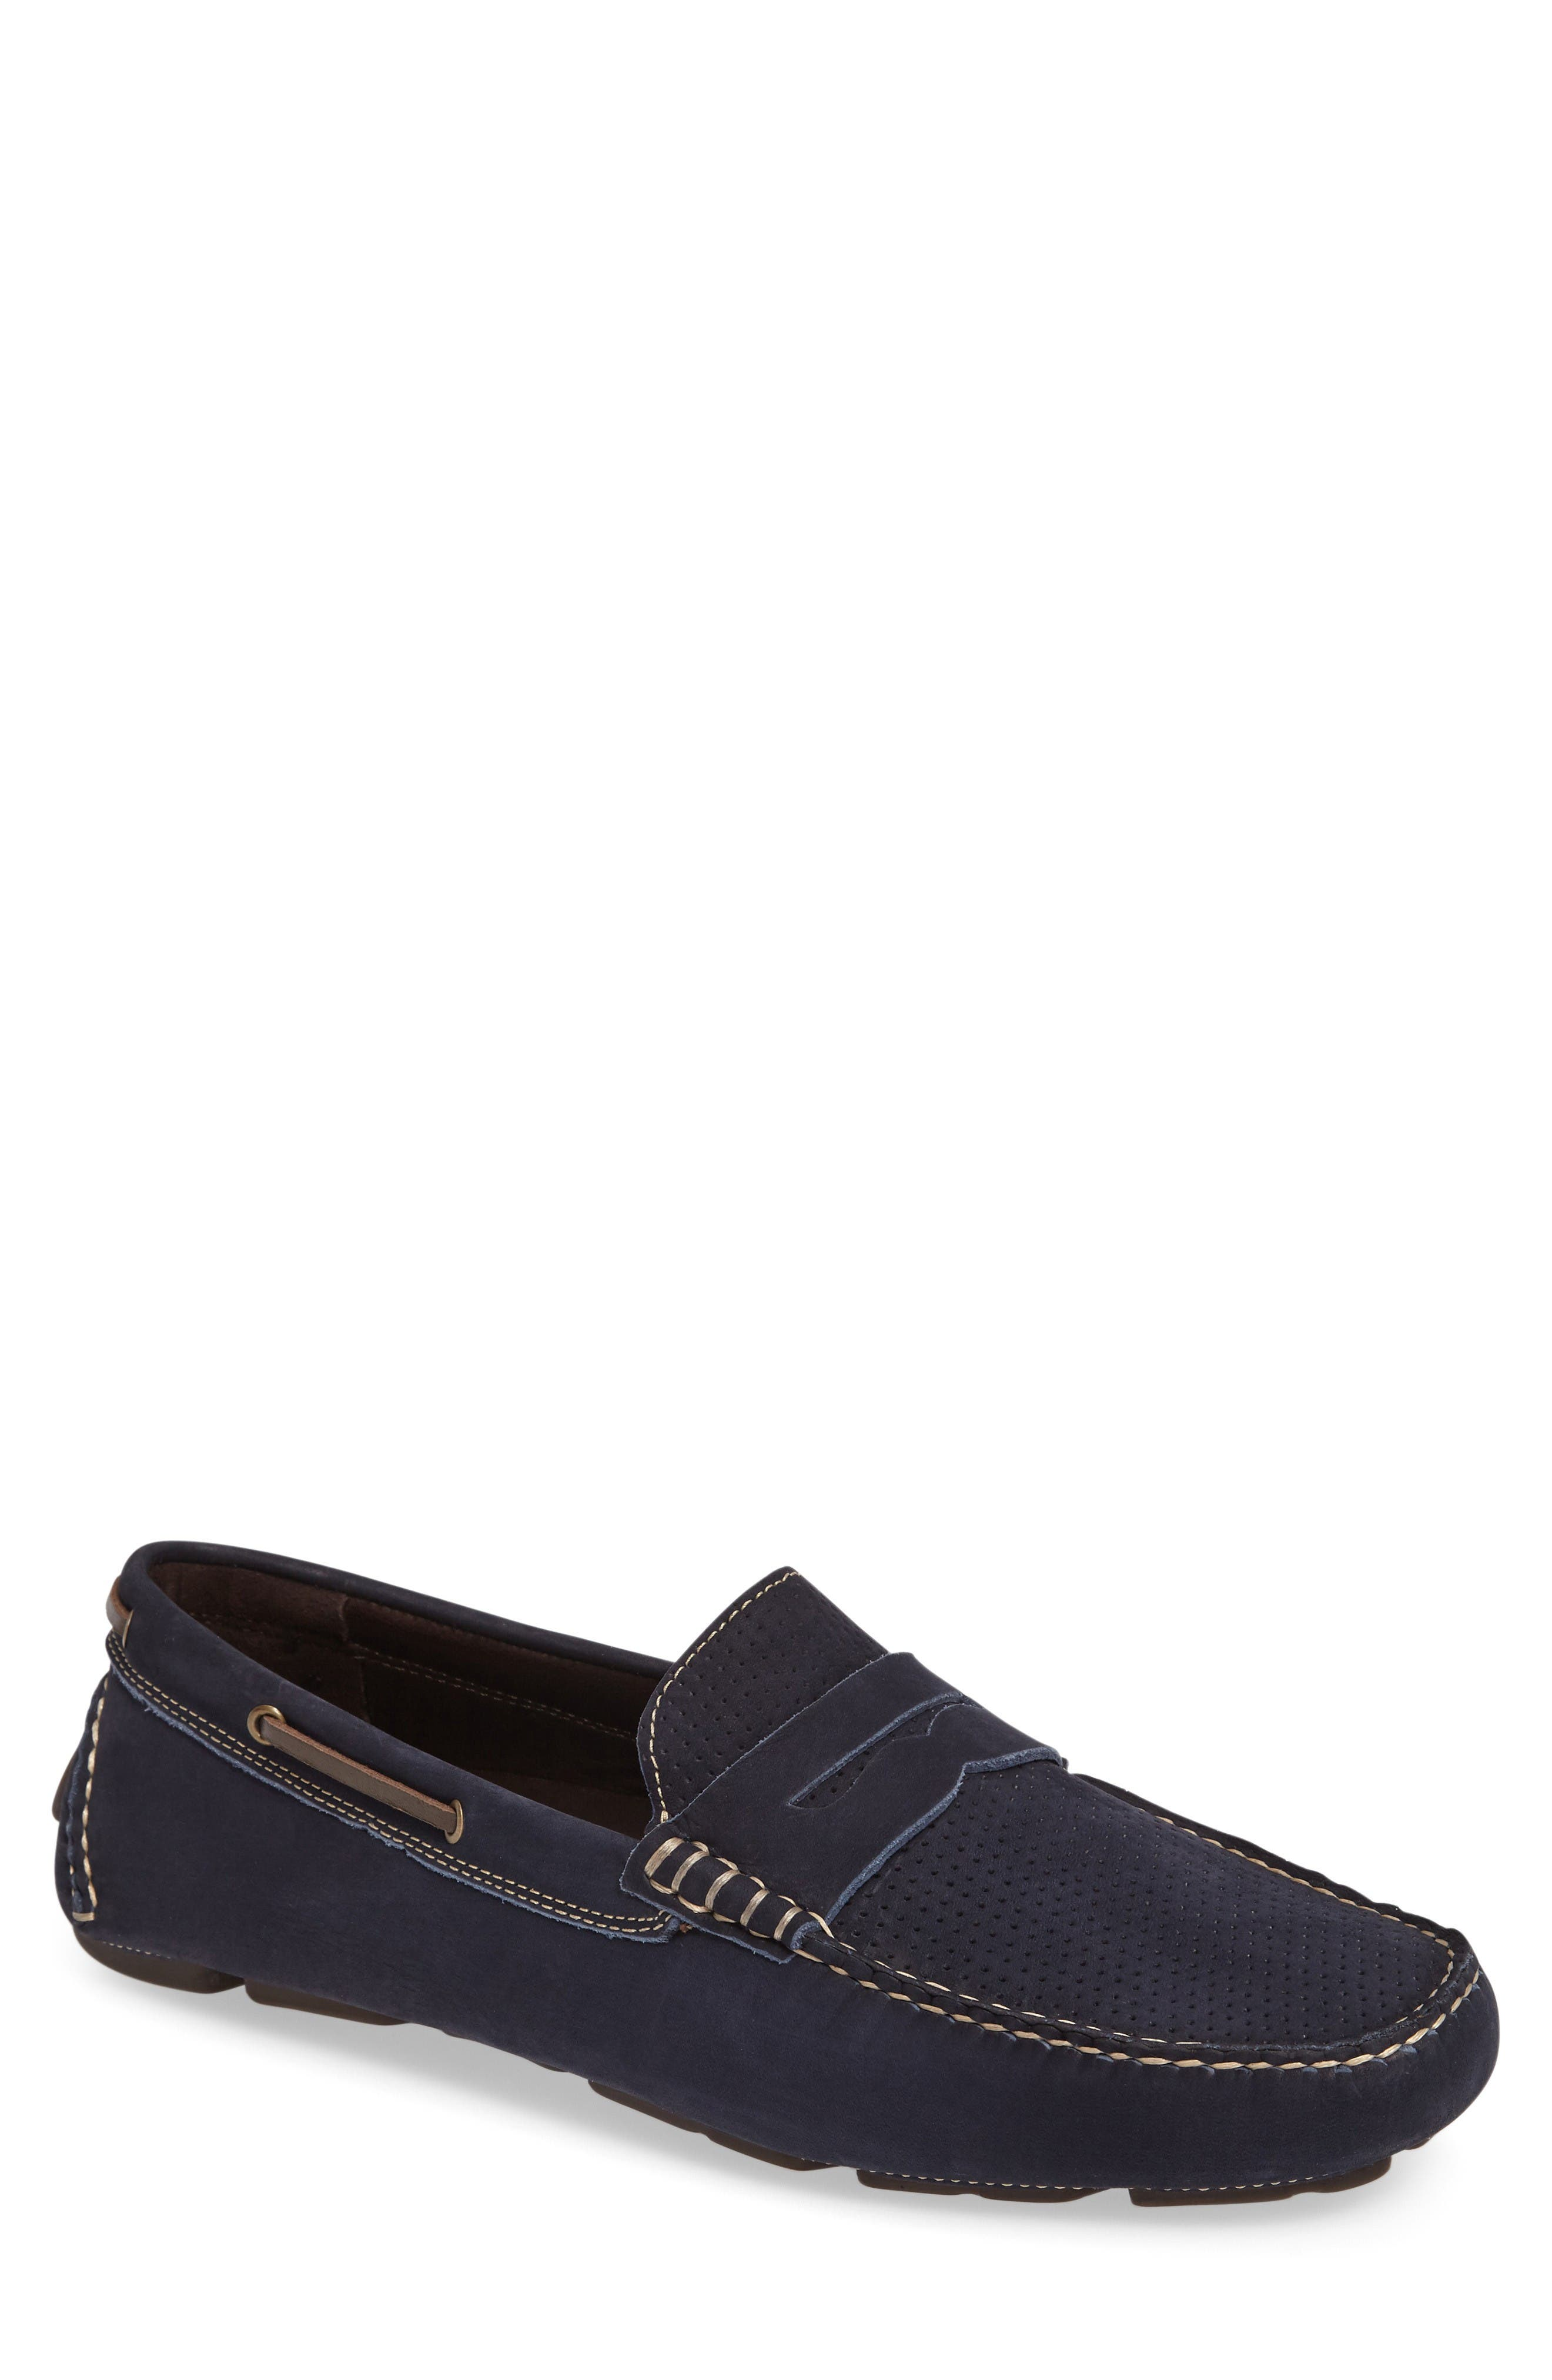 Johnston & Murphy Perforated Driving Loafer (Men)